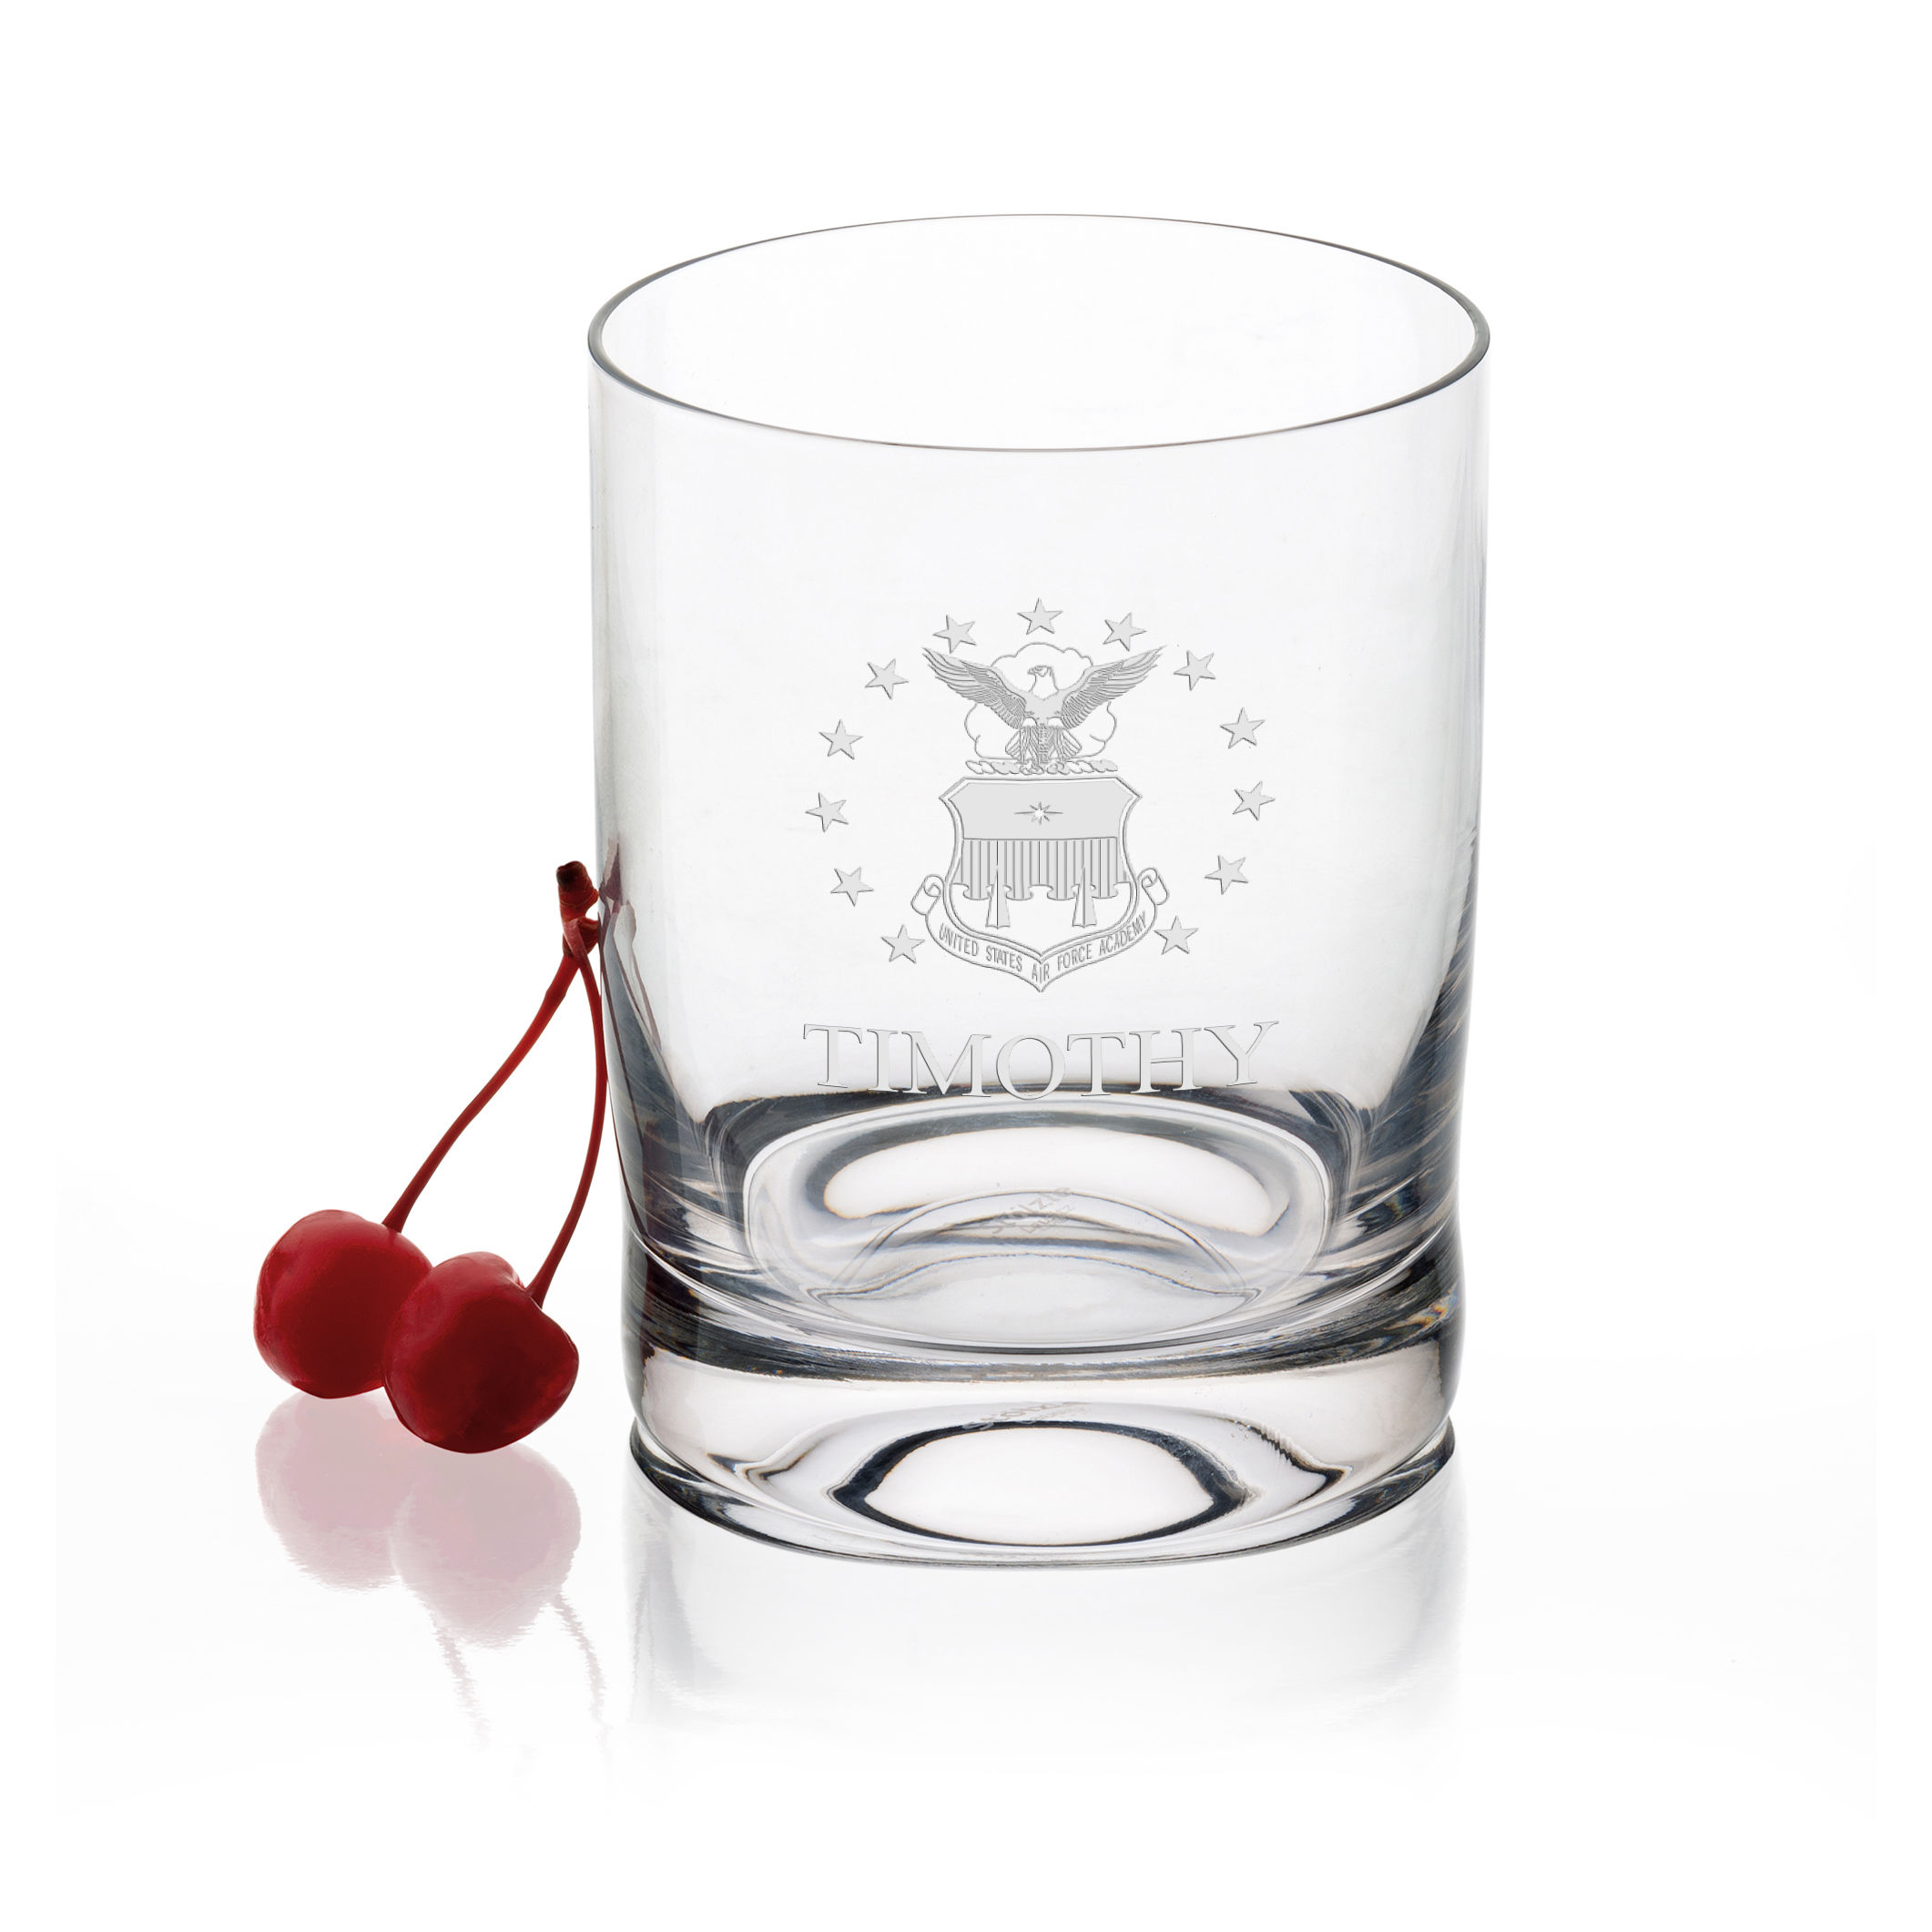 US Air Force Academy Tumbler Glasses - Set of 2